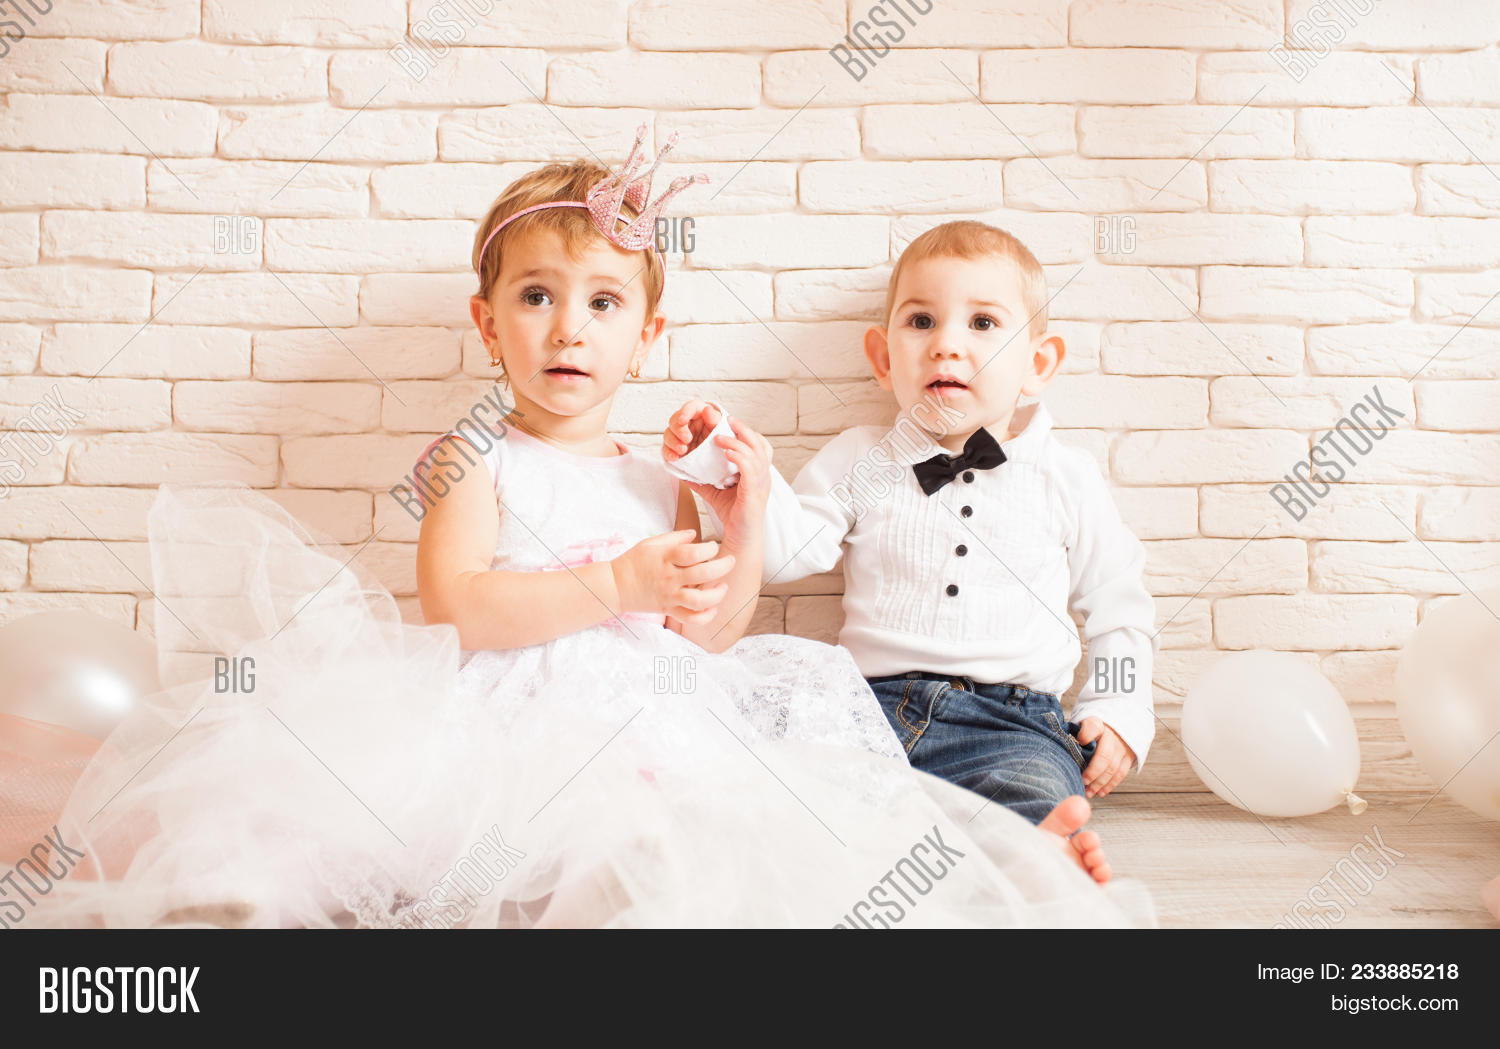 cute babies - boy girl image & photo (free trial) | bigstock